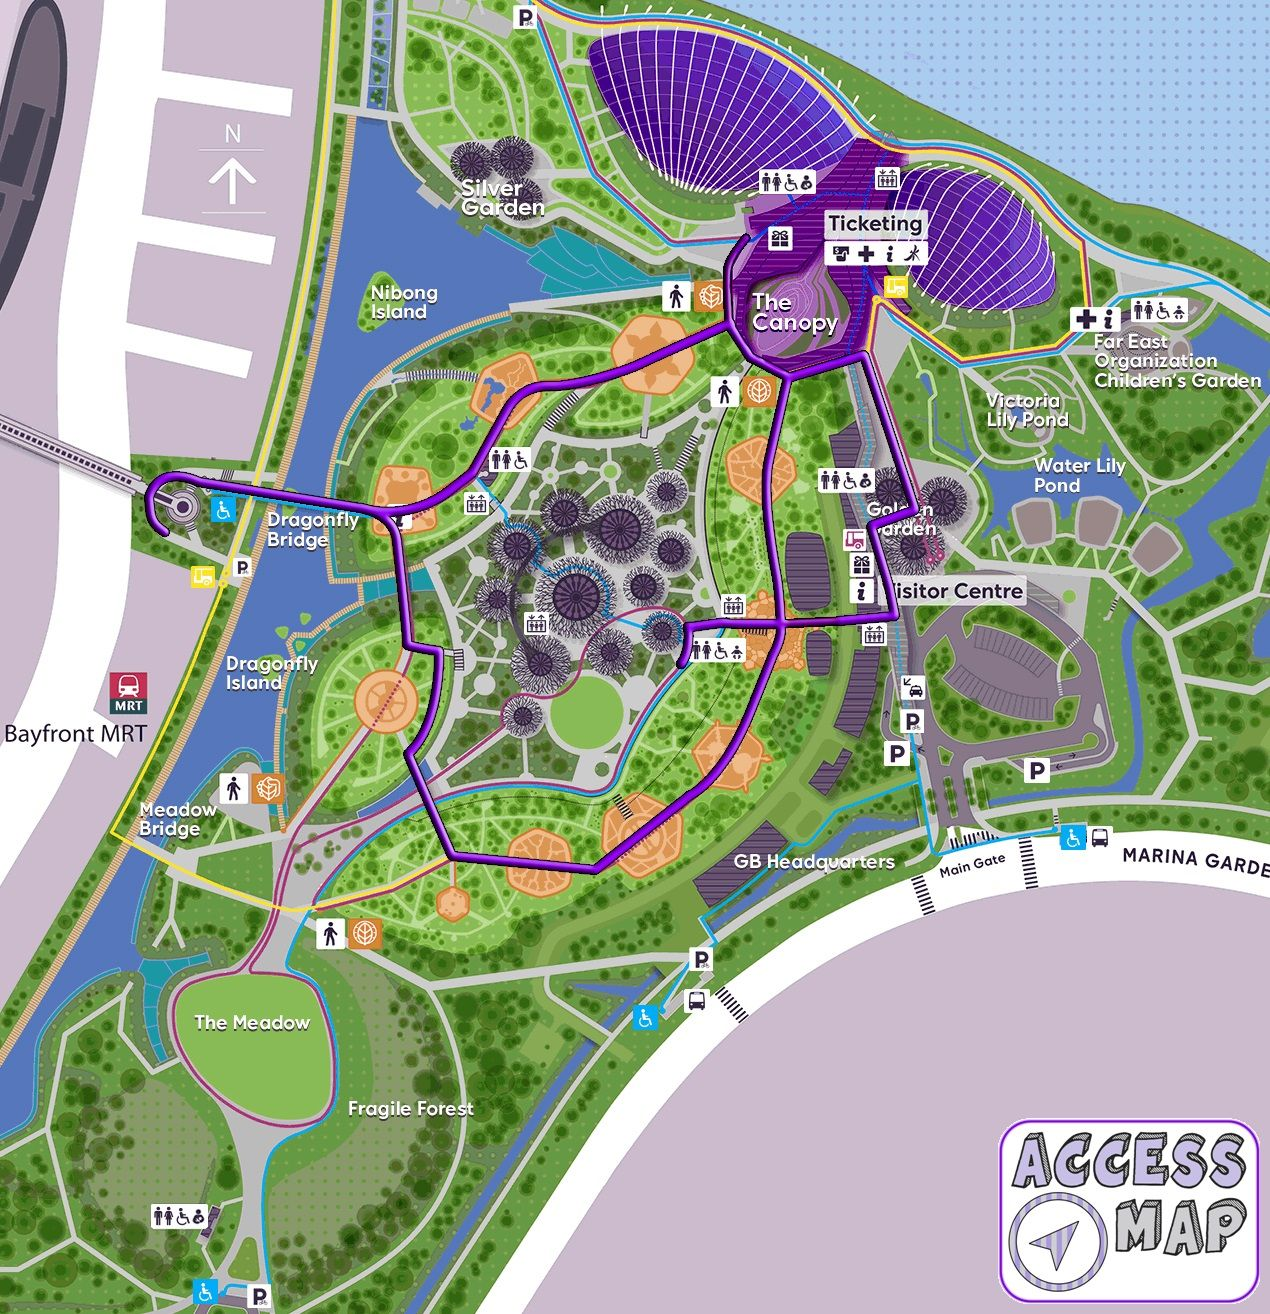 Pin By Arafat On Garden By The Bay Water Pond Lily Pond Gardens By The Bay